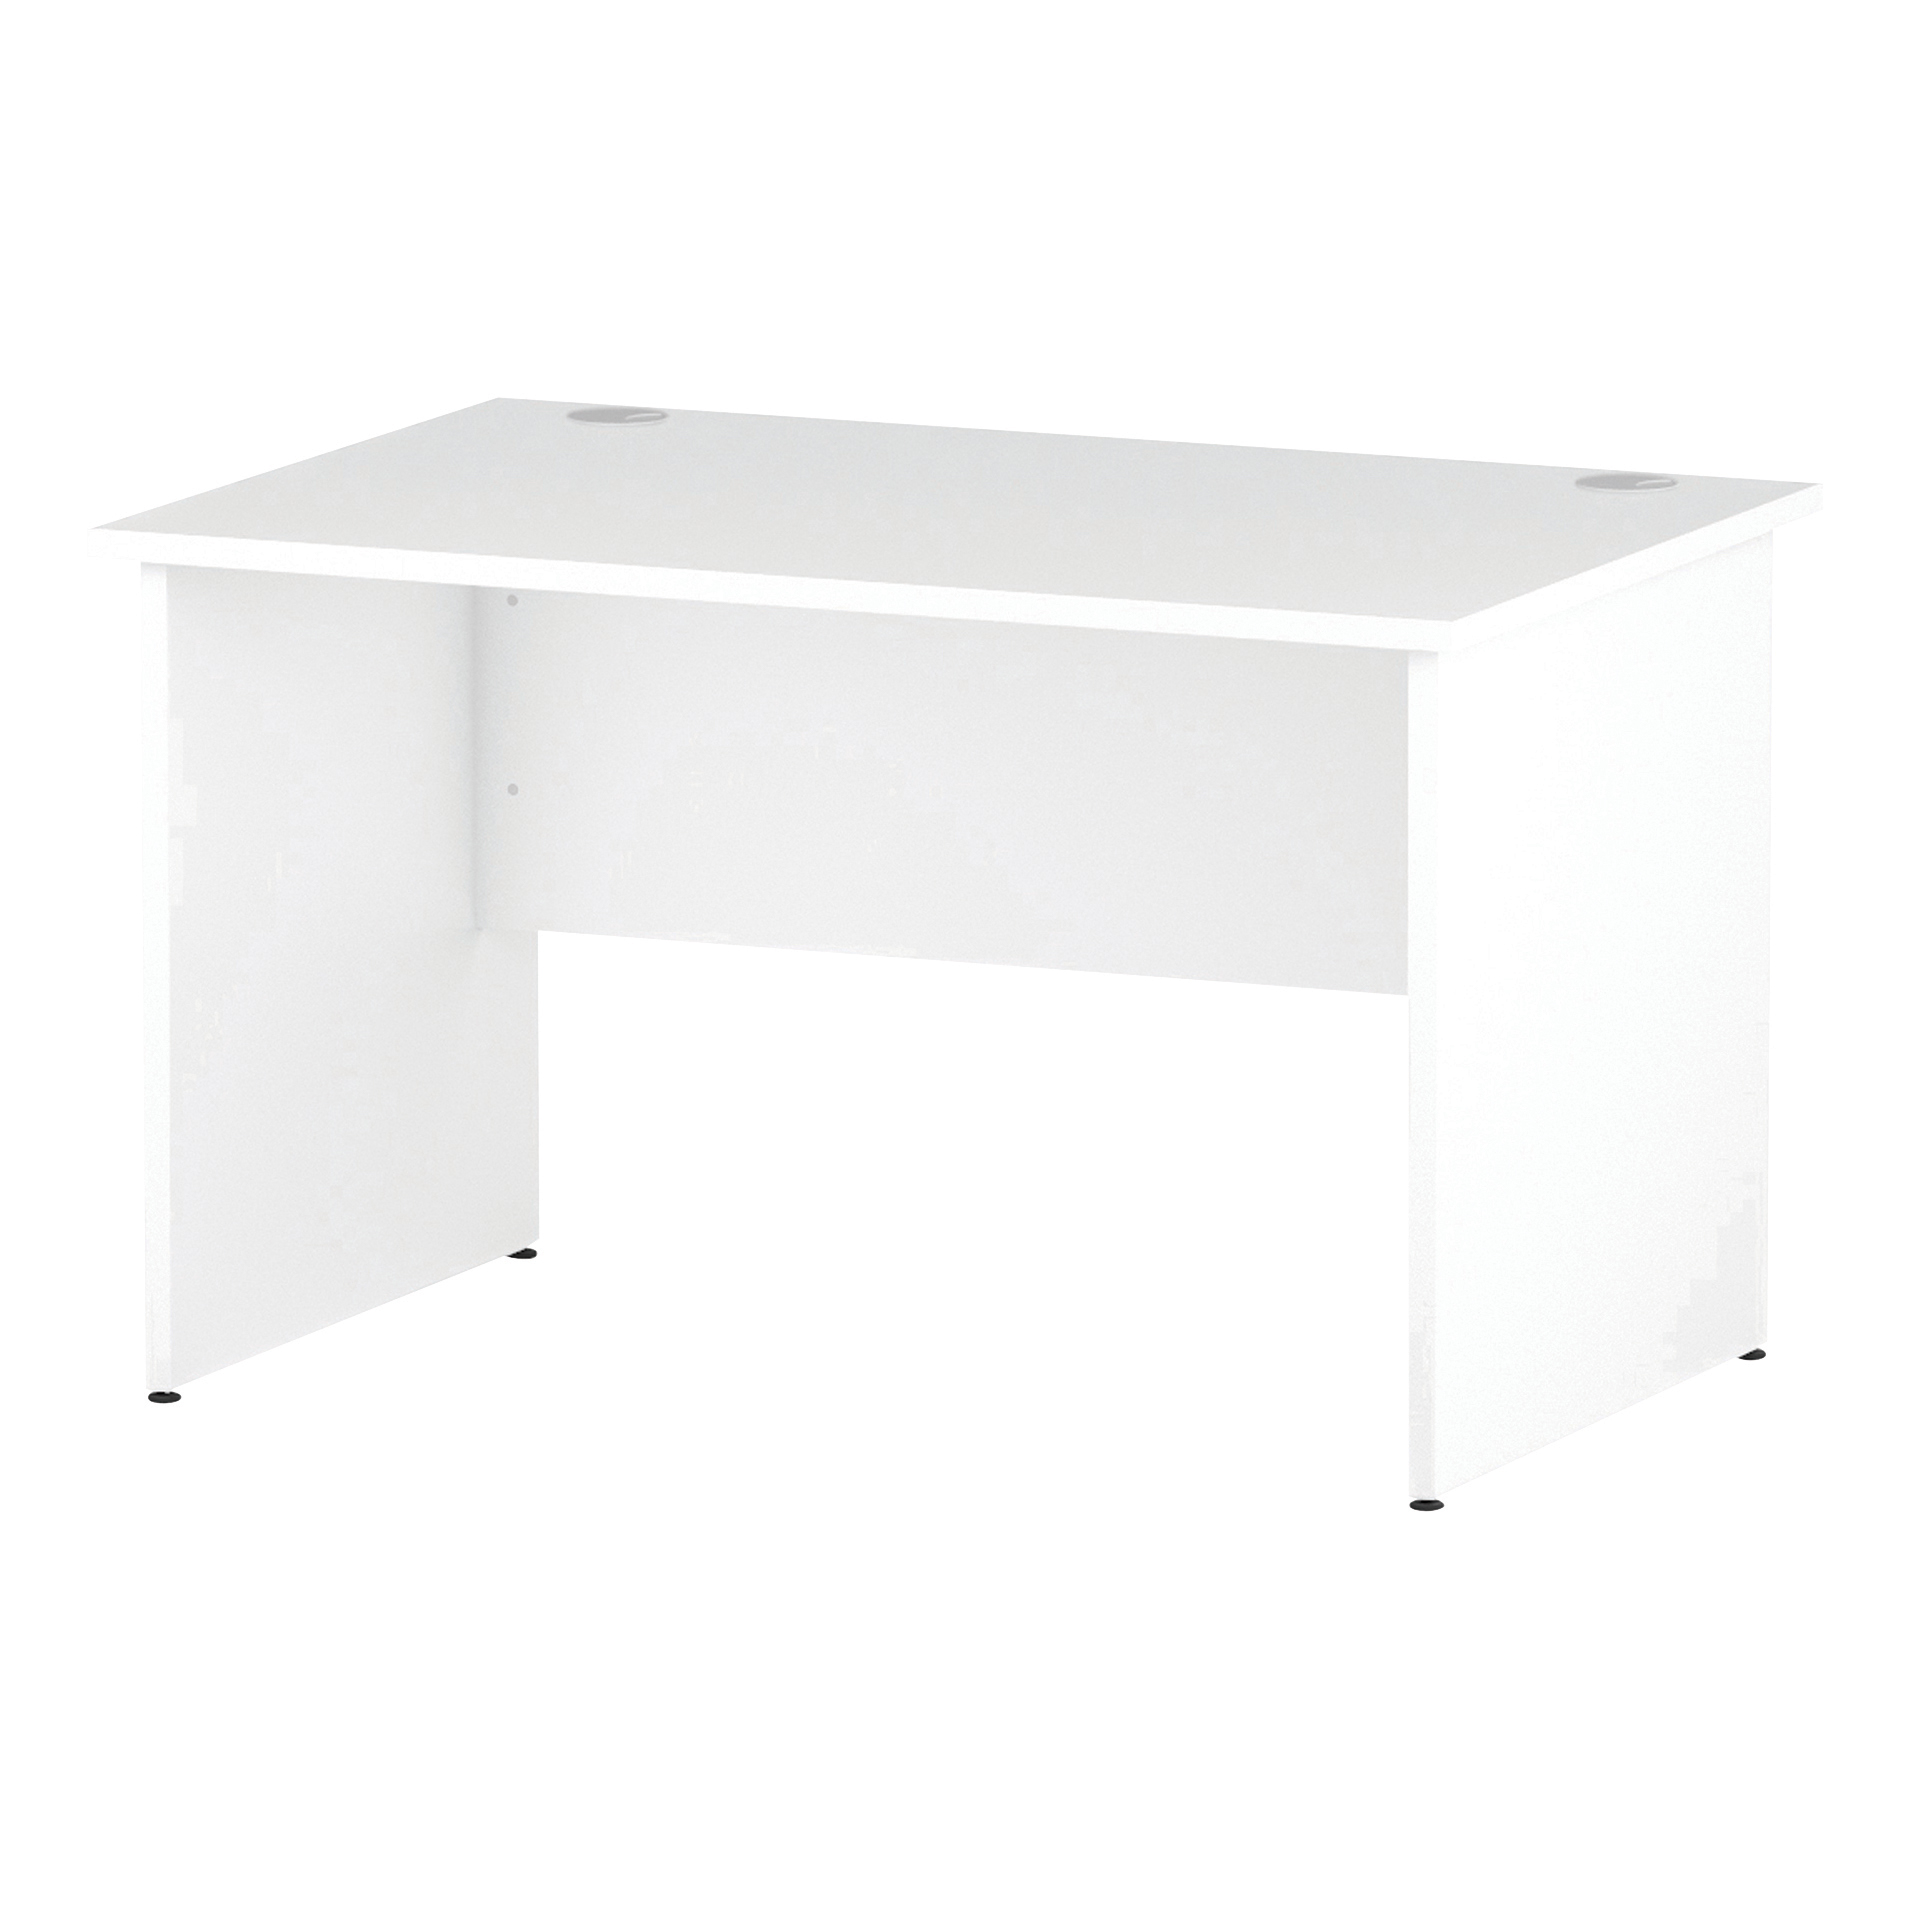 Trexus Rectangular Desk Panel End Leg 1200x800mm White Ref I000393